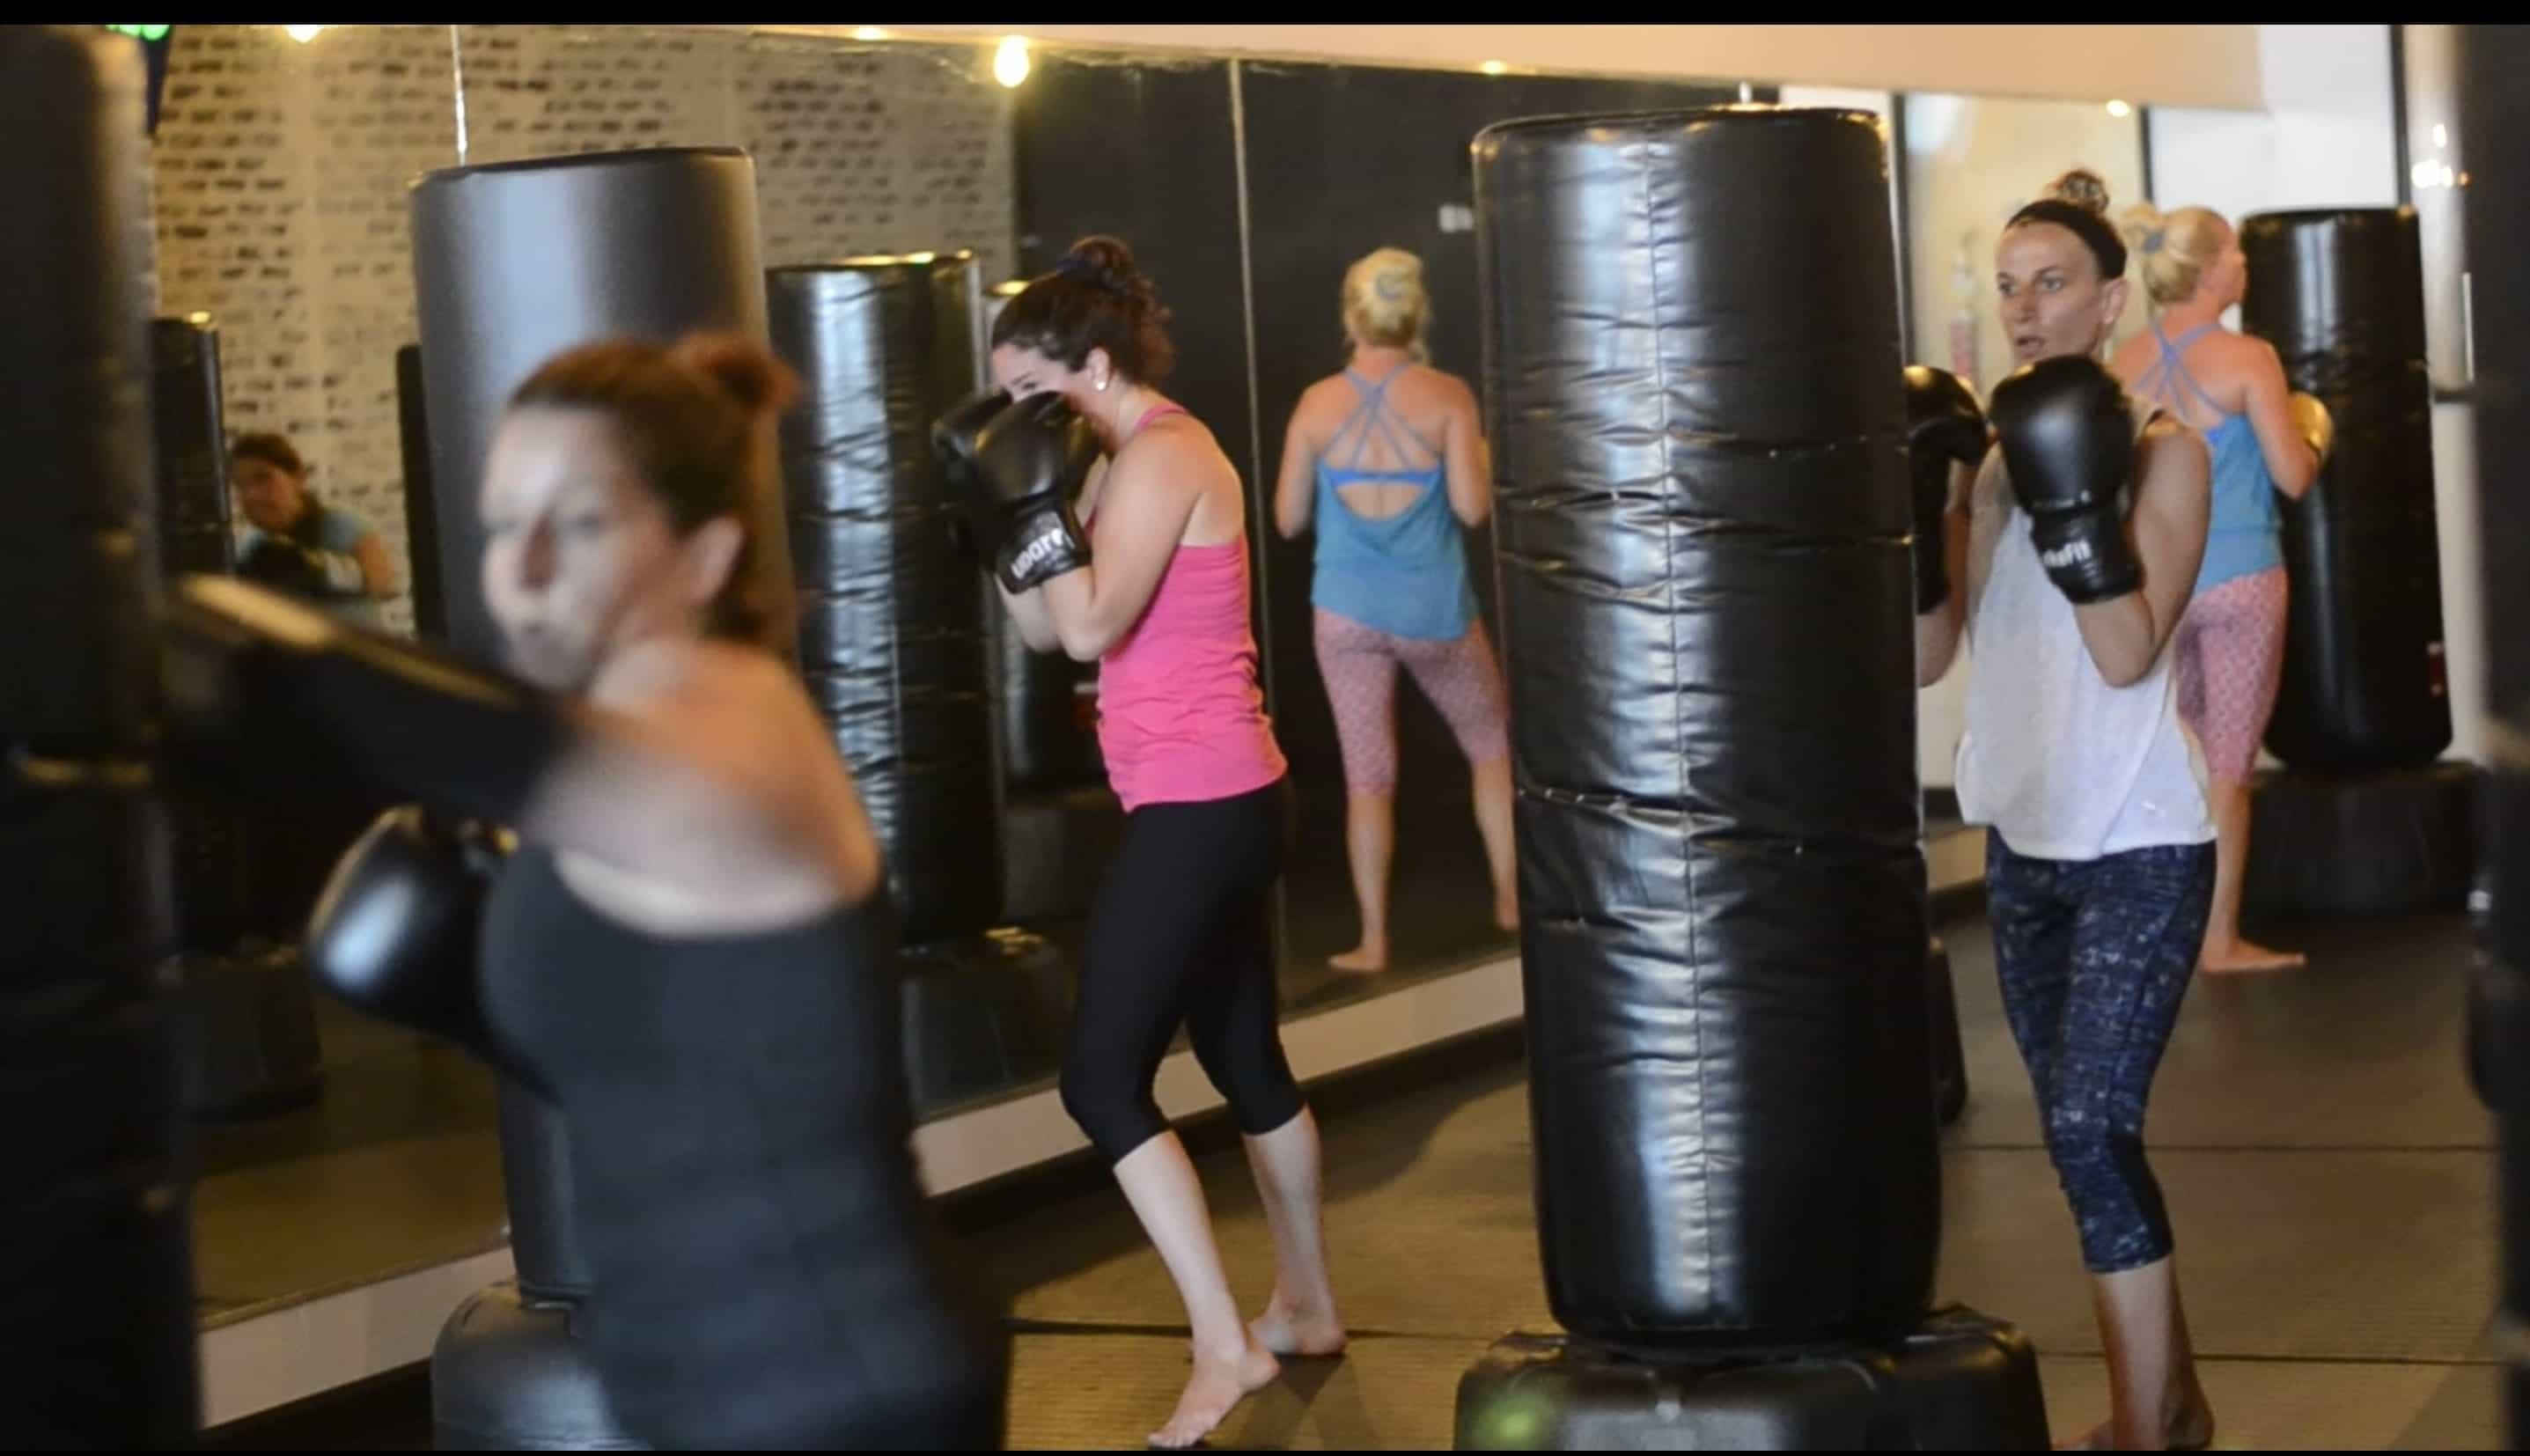 women catching their breather between rounds at udar kickboxing class in long beach ny